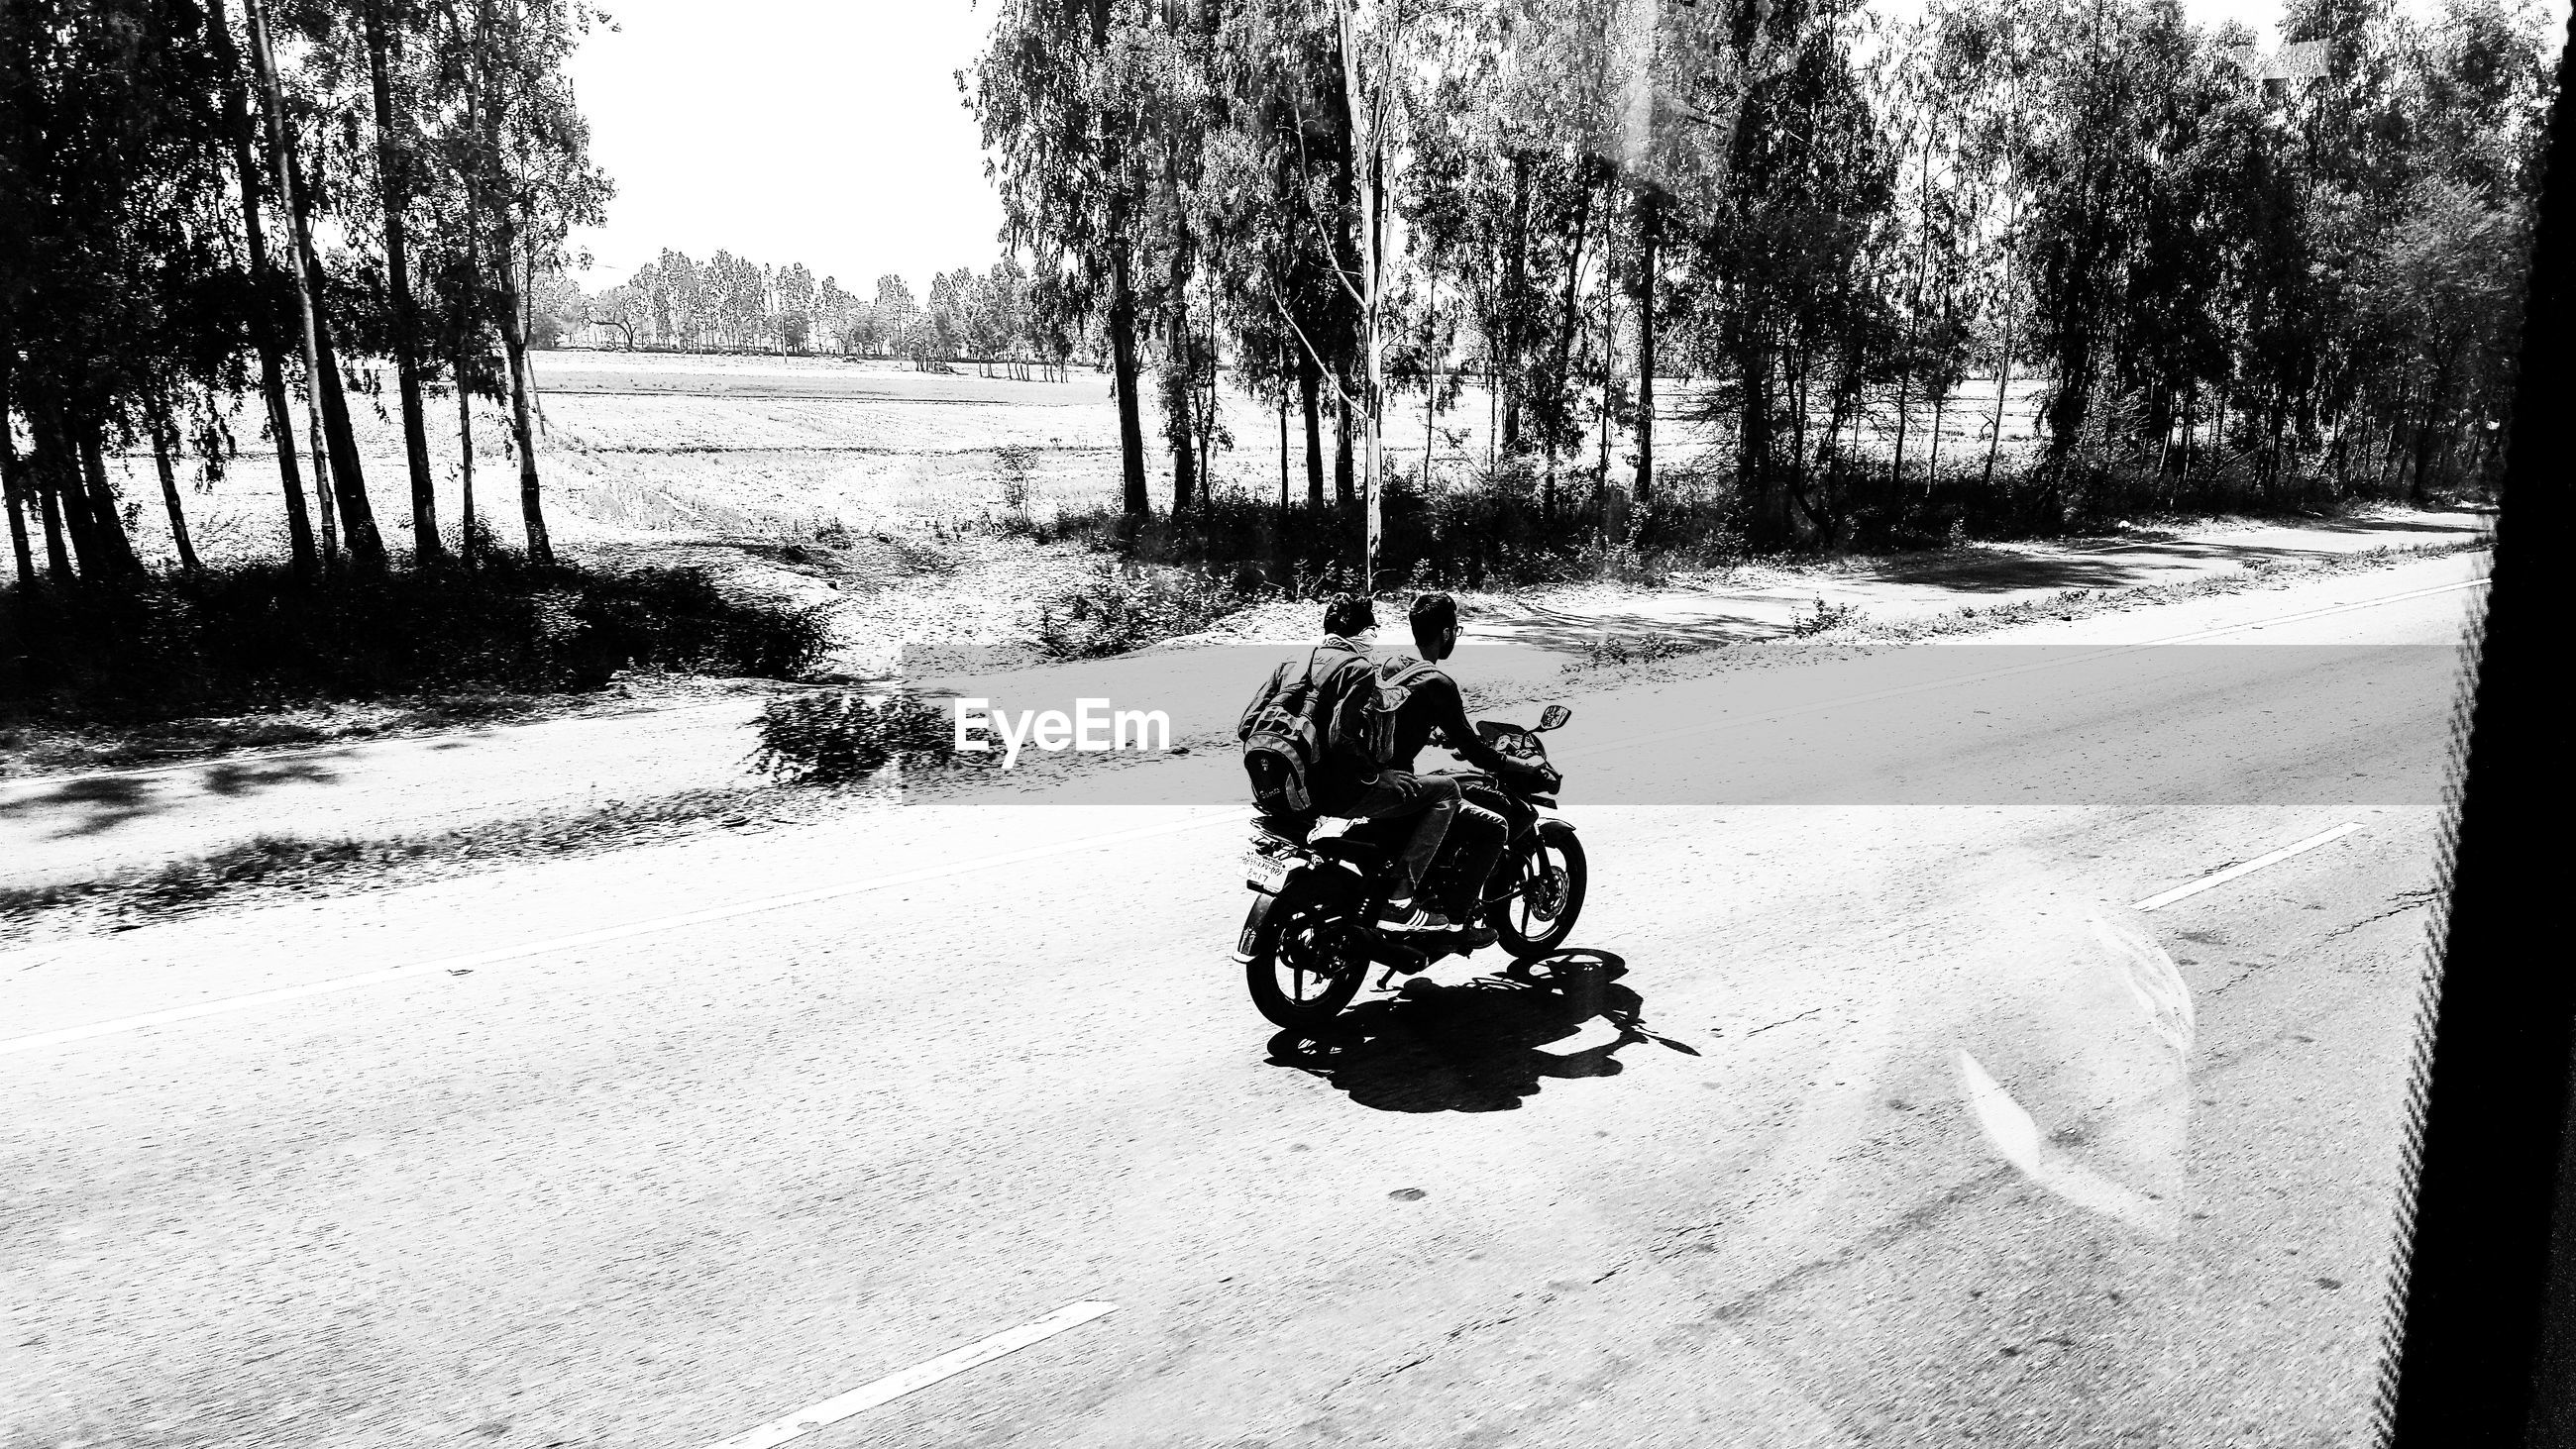 Friends riding motorcycle on road against trees